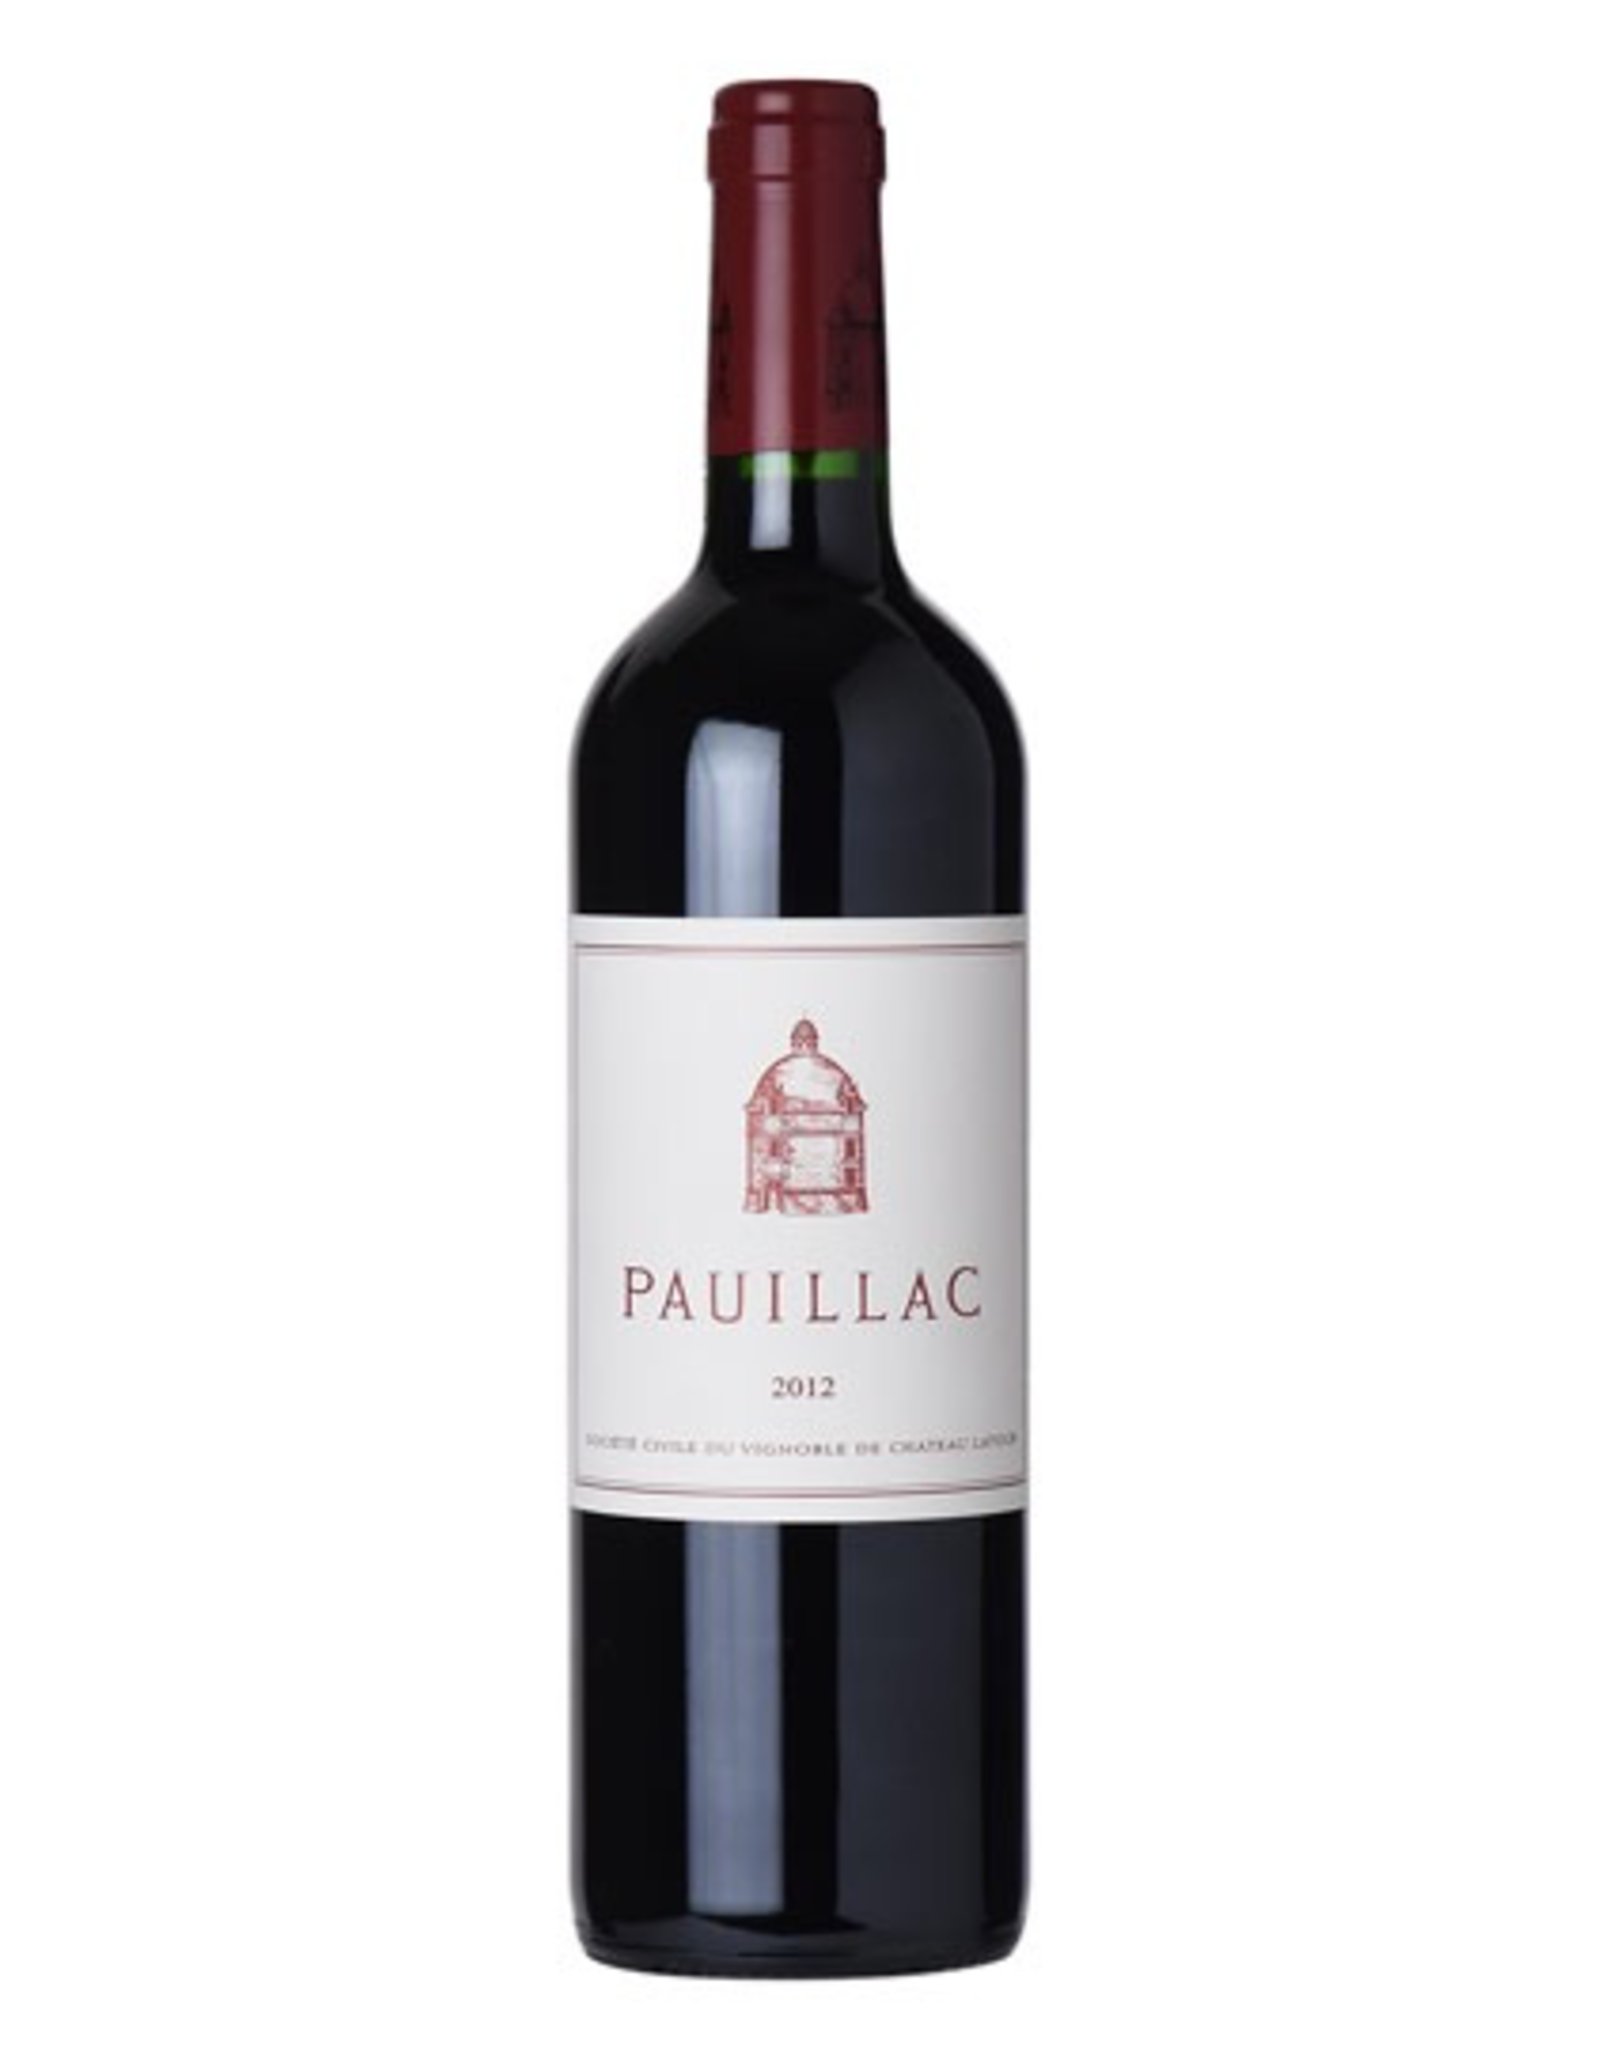 Red Wine 2012, Pauillac de Latour 1st Growth 3rd Grand Cru, Red Bordeaux Blend, Pauillac, Bordeaux, France, 14% Alc, CT90.6